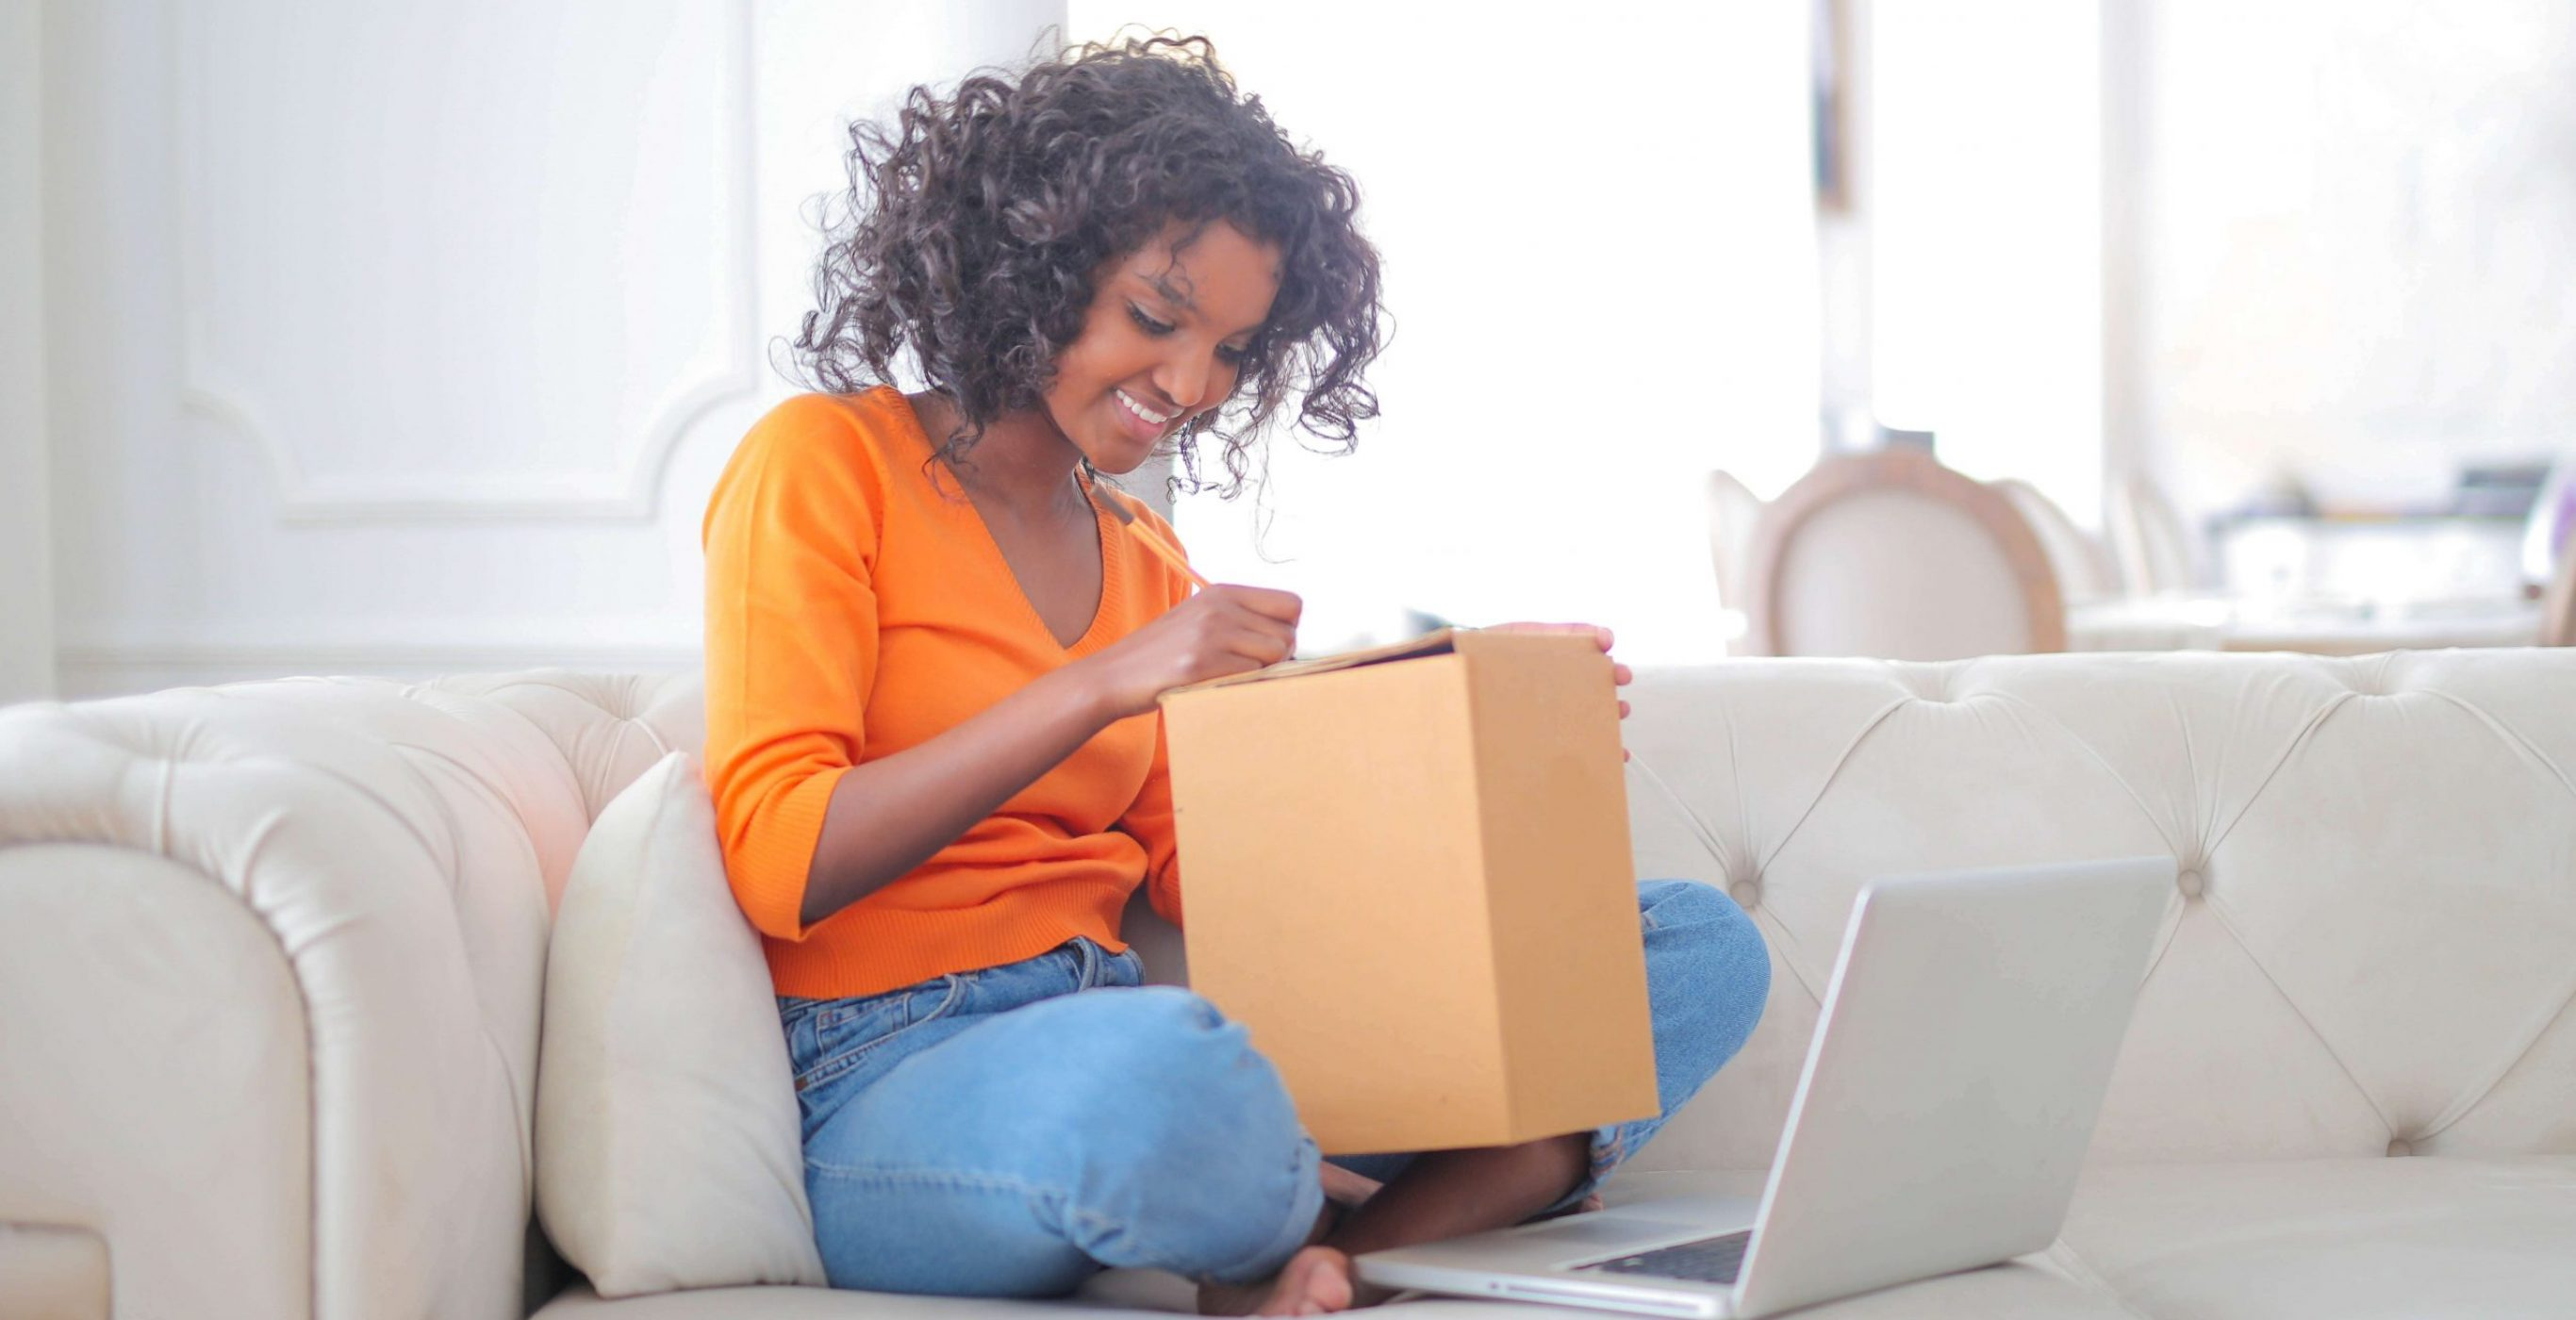 A woman on a couch inspecting a box beside a laptop, used as the featured image for the article